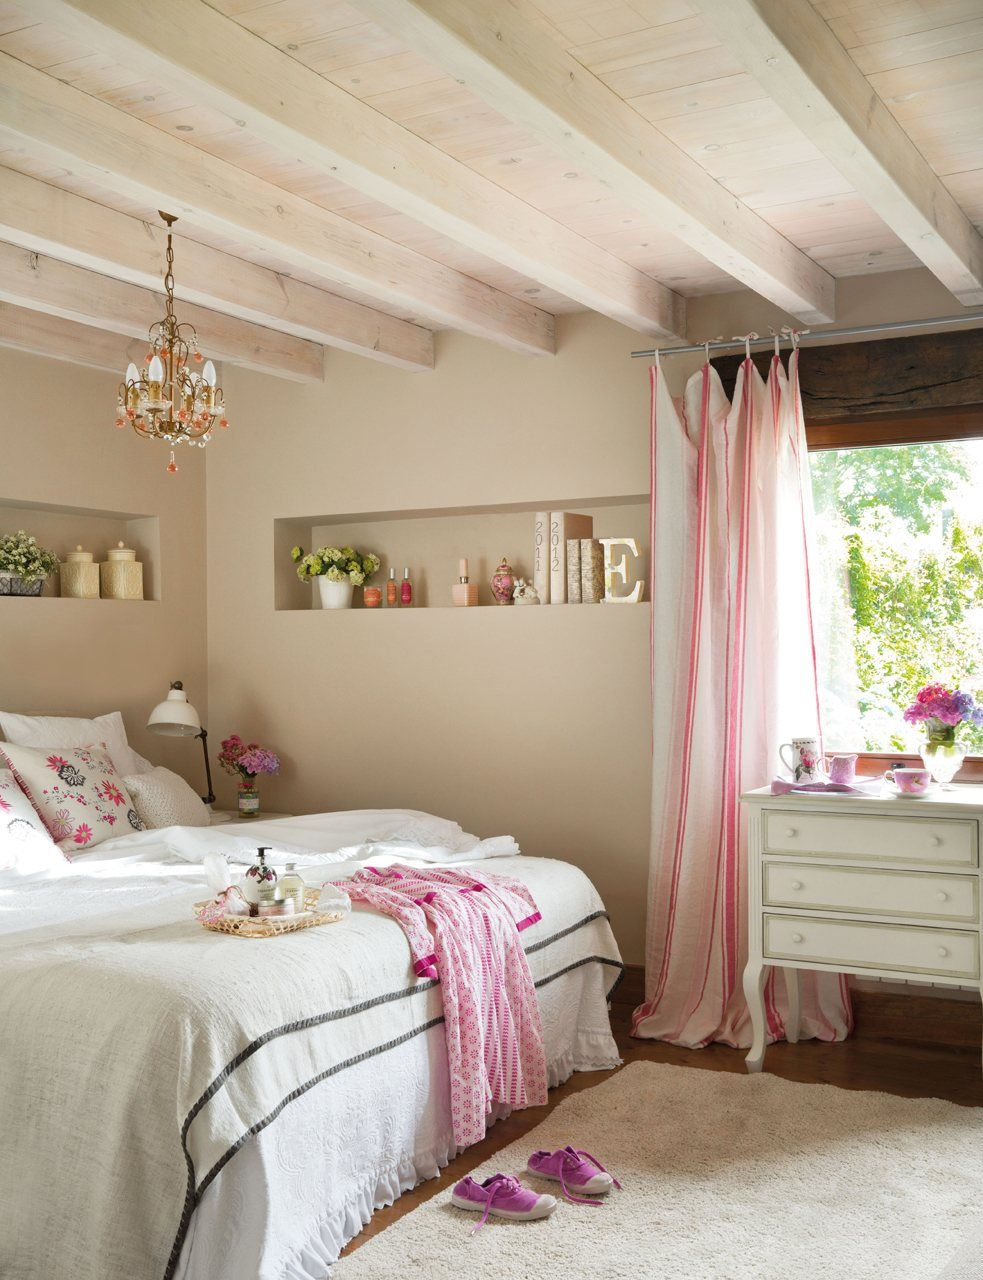 Vicky's Home: Una casa fresca y relajante / A cool and relaxing home